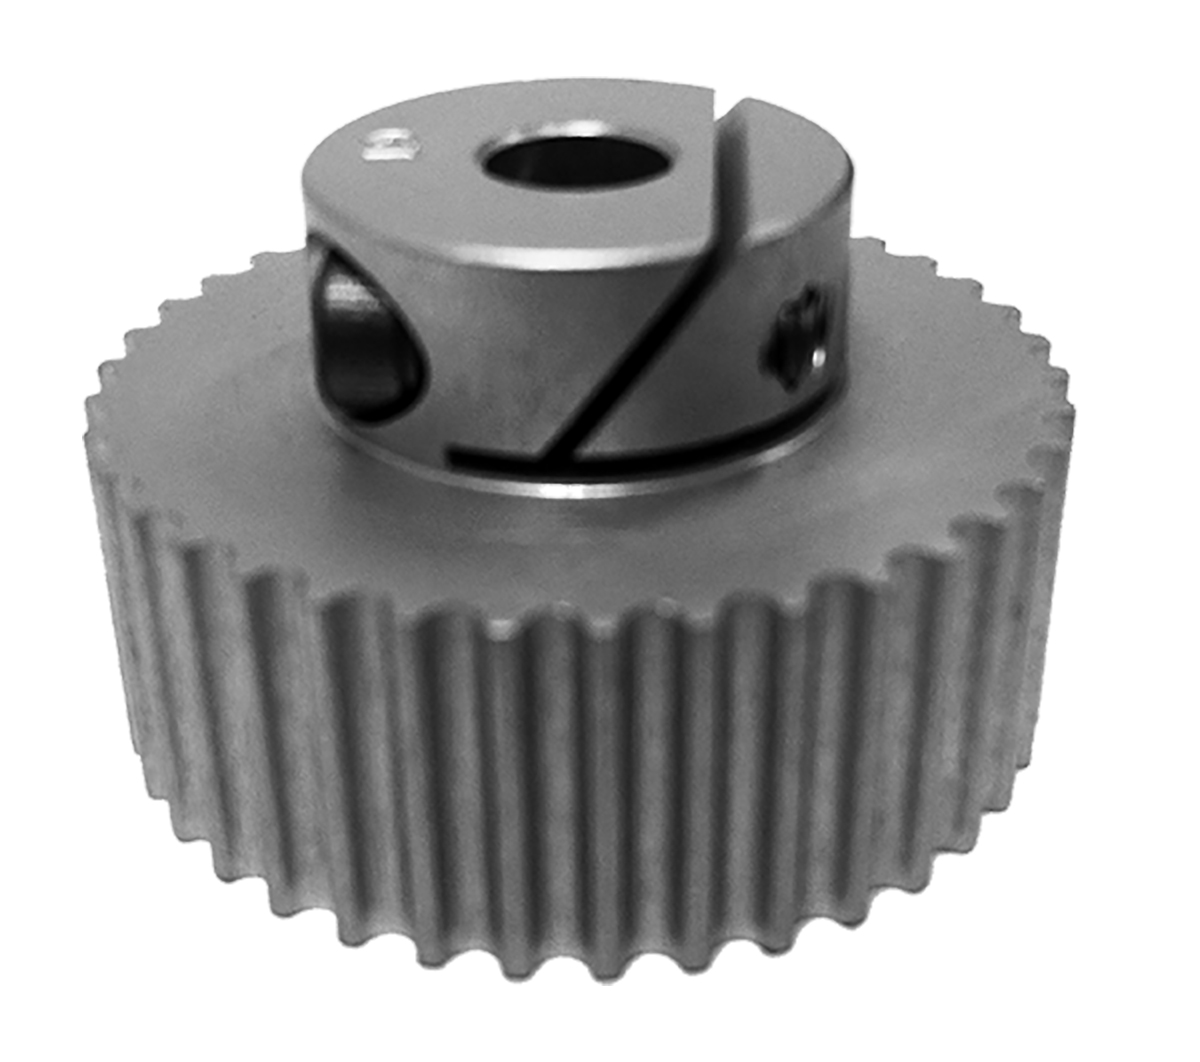 56-3P09-IA4 - E-Z Lock Hub Aluminum Powerhouse® Pulleys